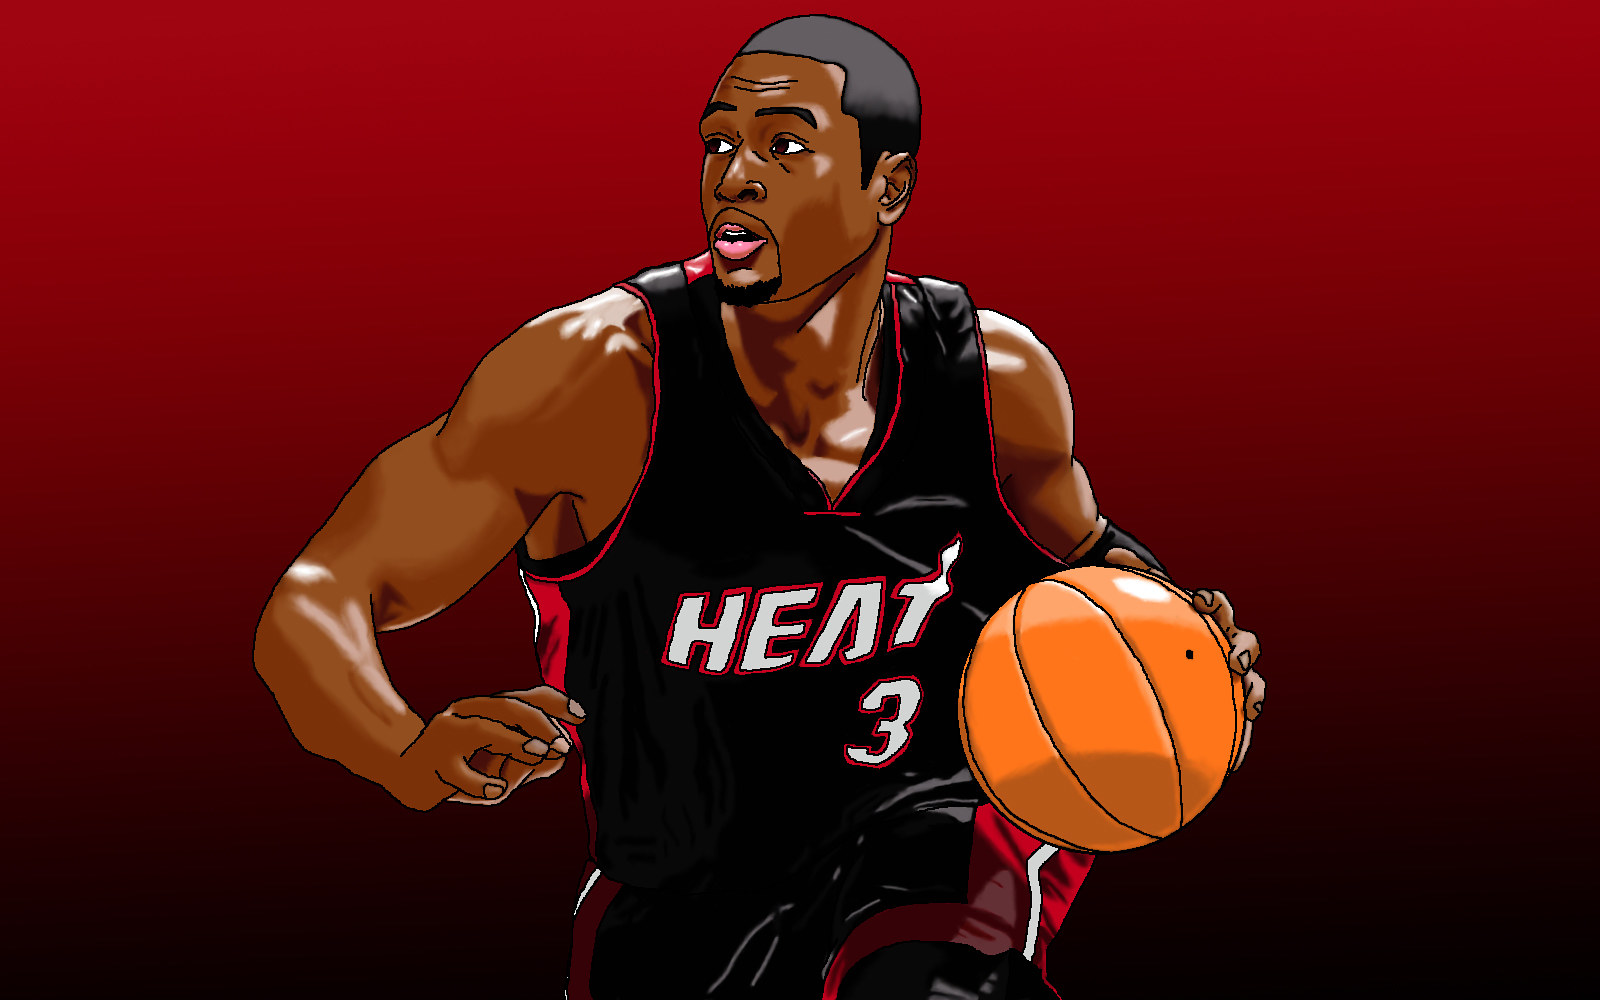 Dwayne Wade Portrait by Jordan Woodard